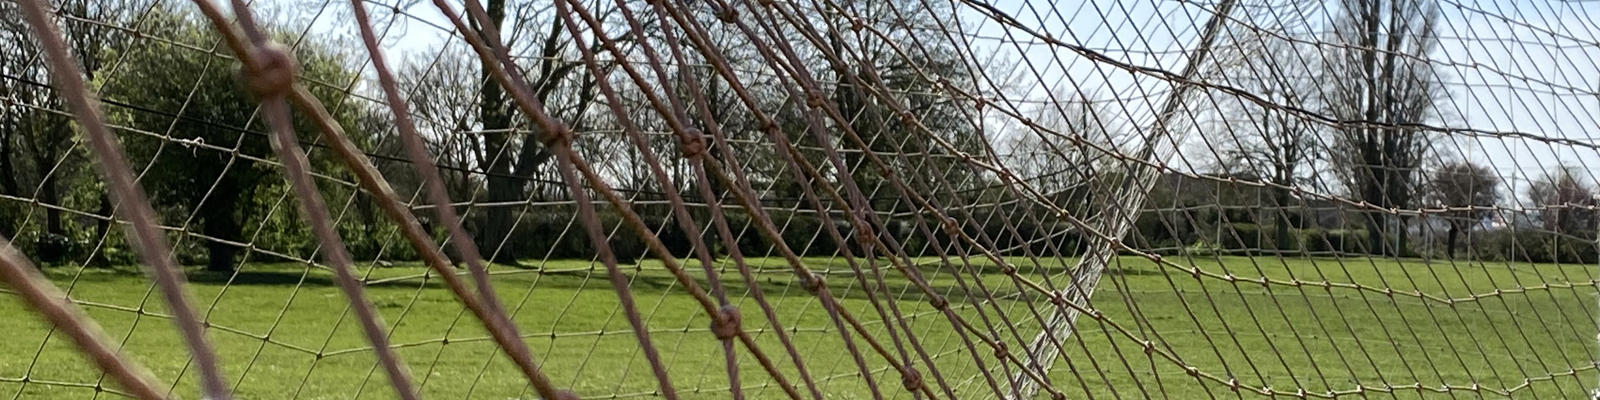 Tollesbury Parish Council, Amenities And Facilities, Recreation Ground Football Nets